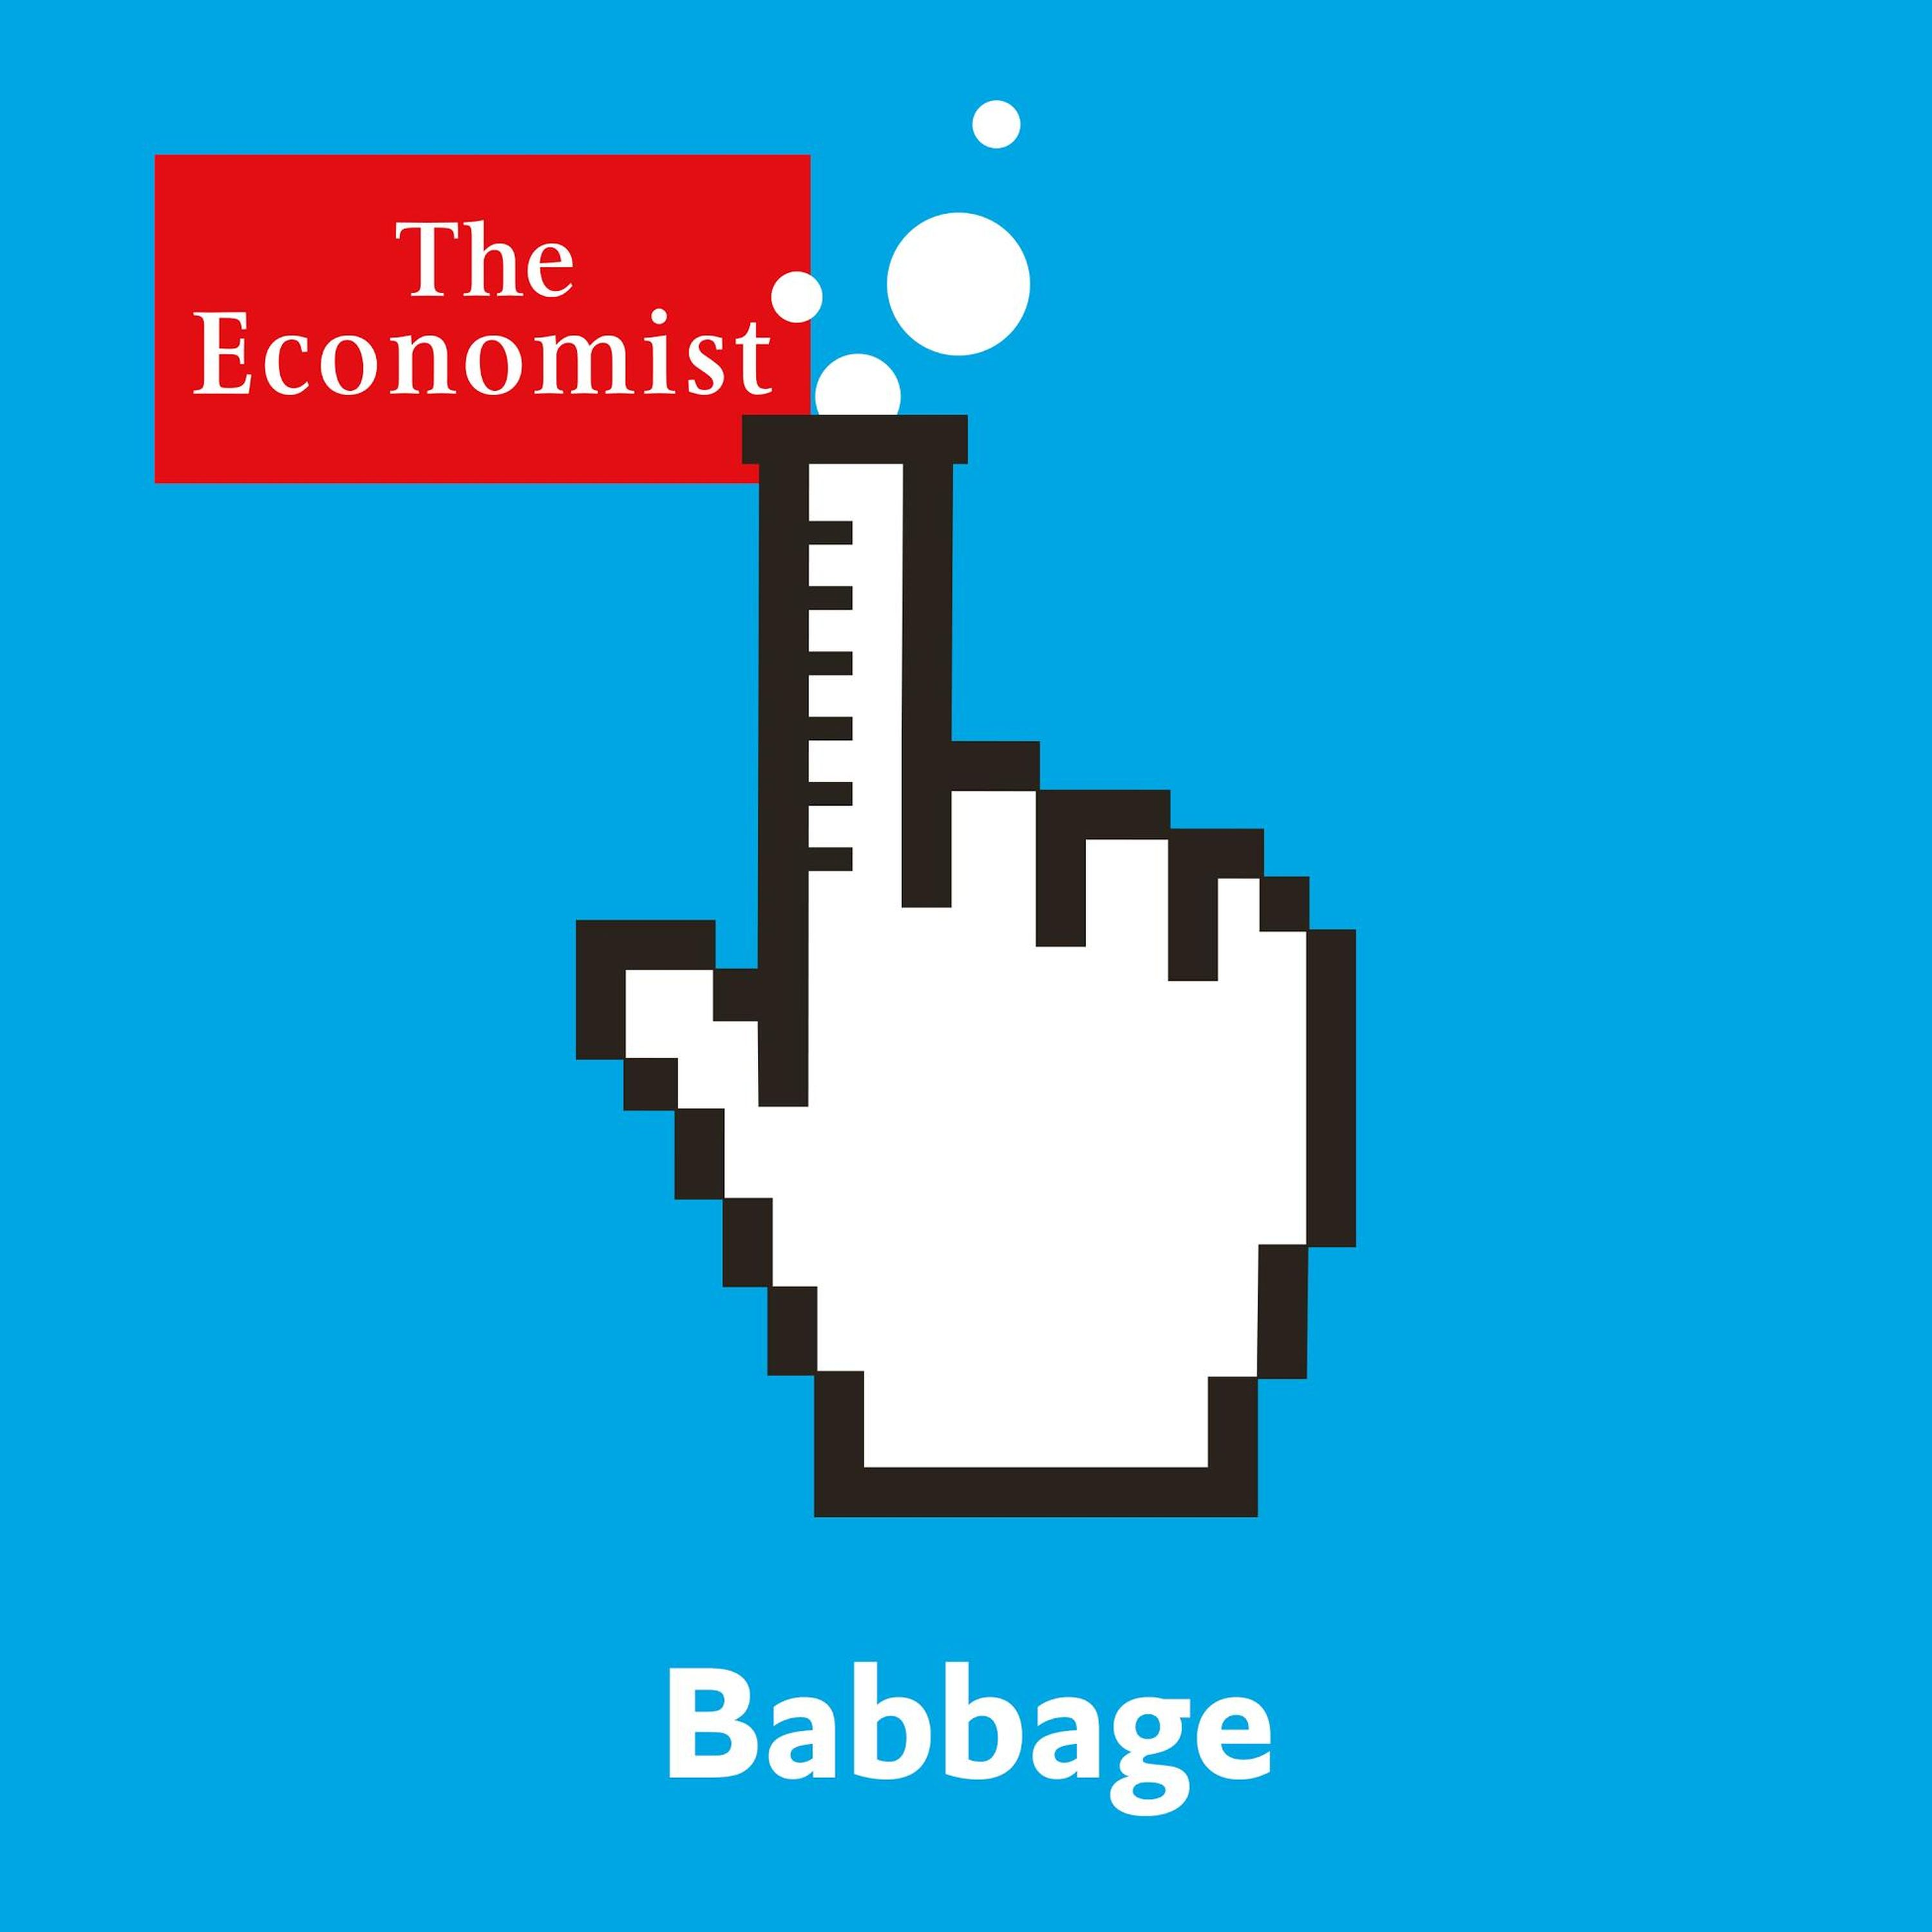 Babbage: Burning down the house